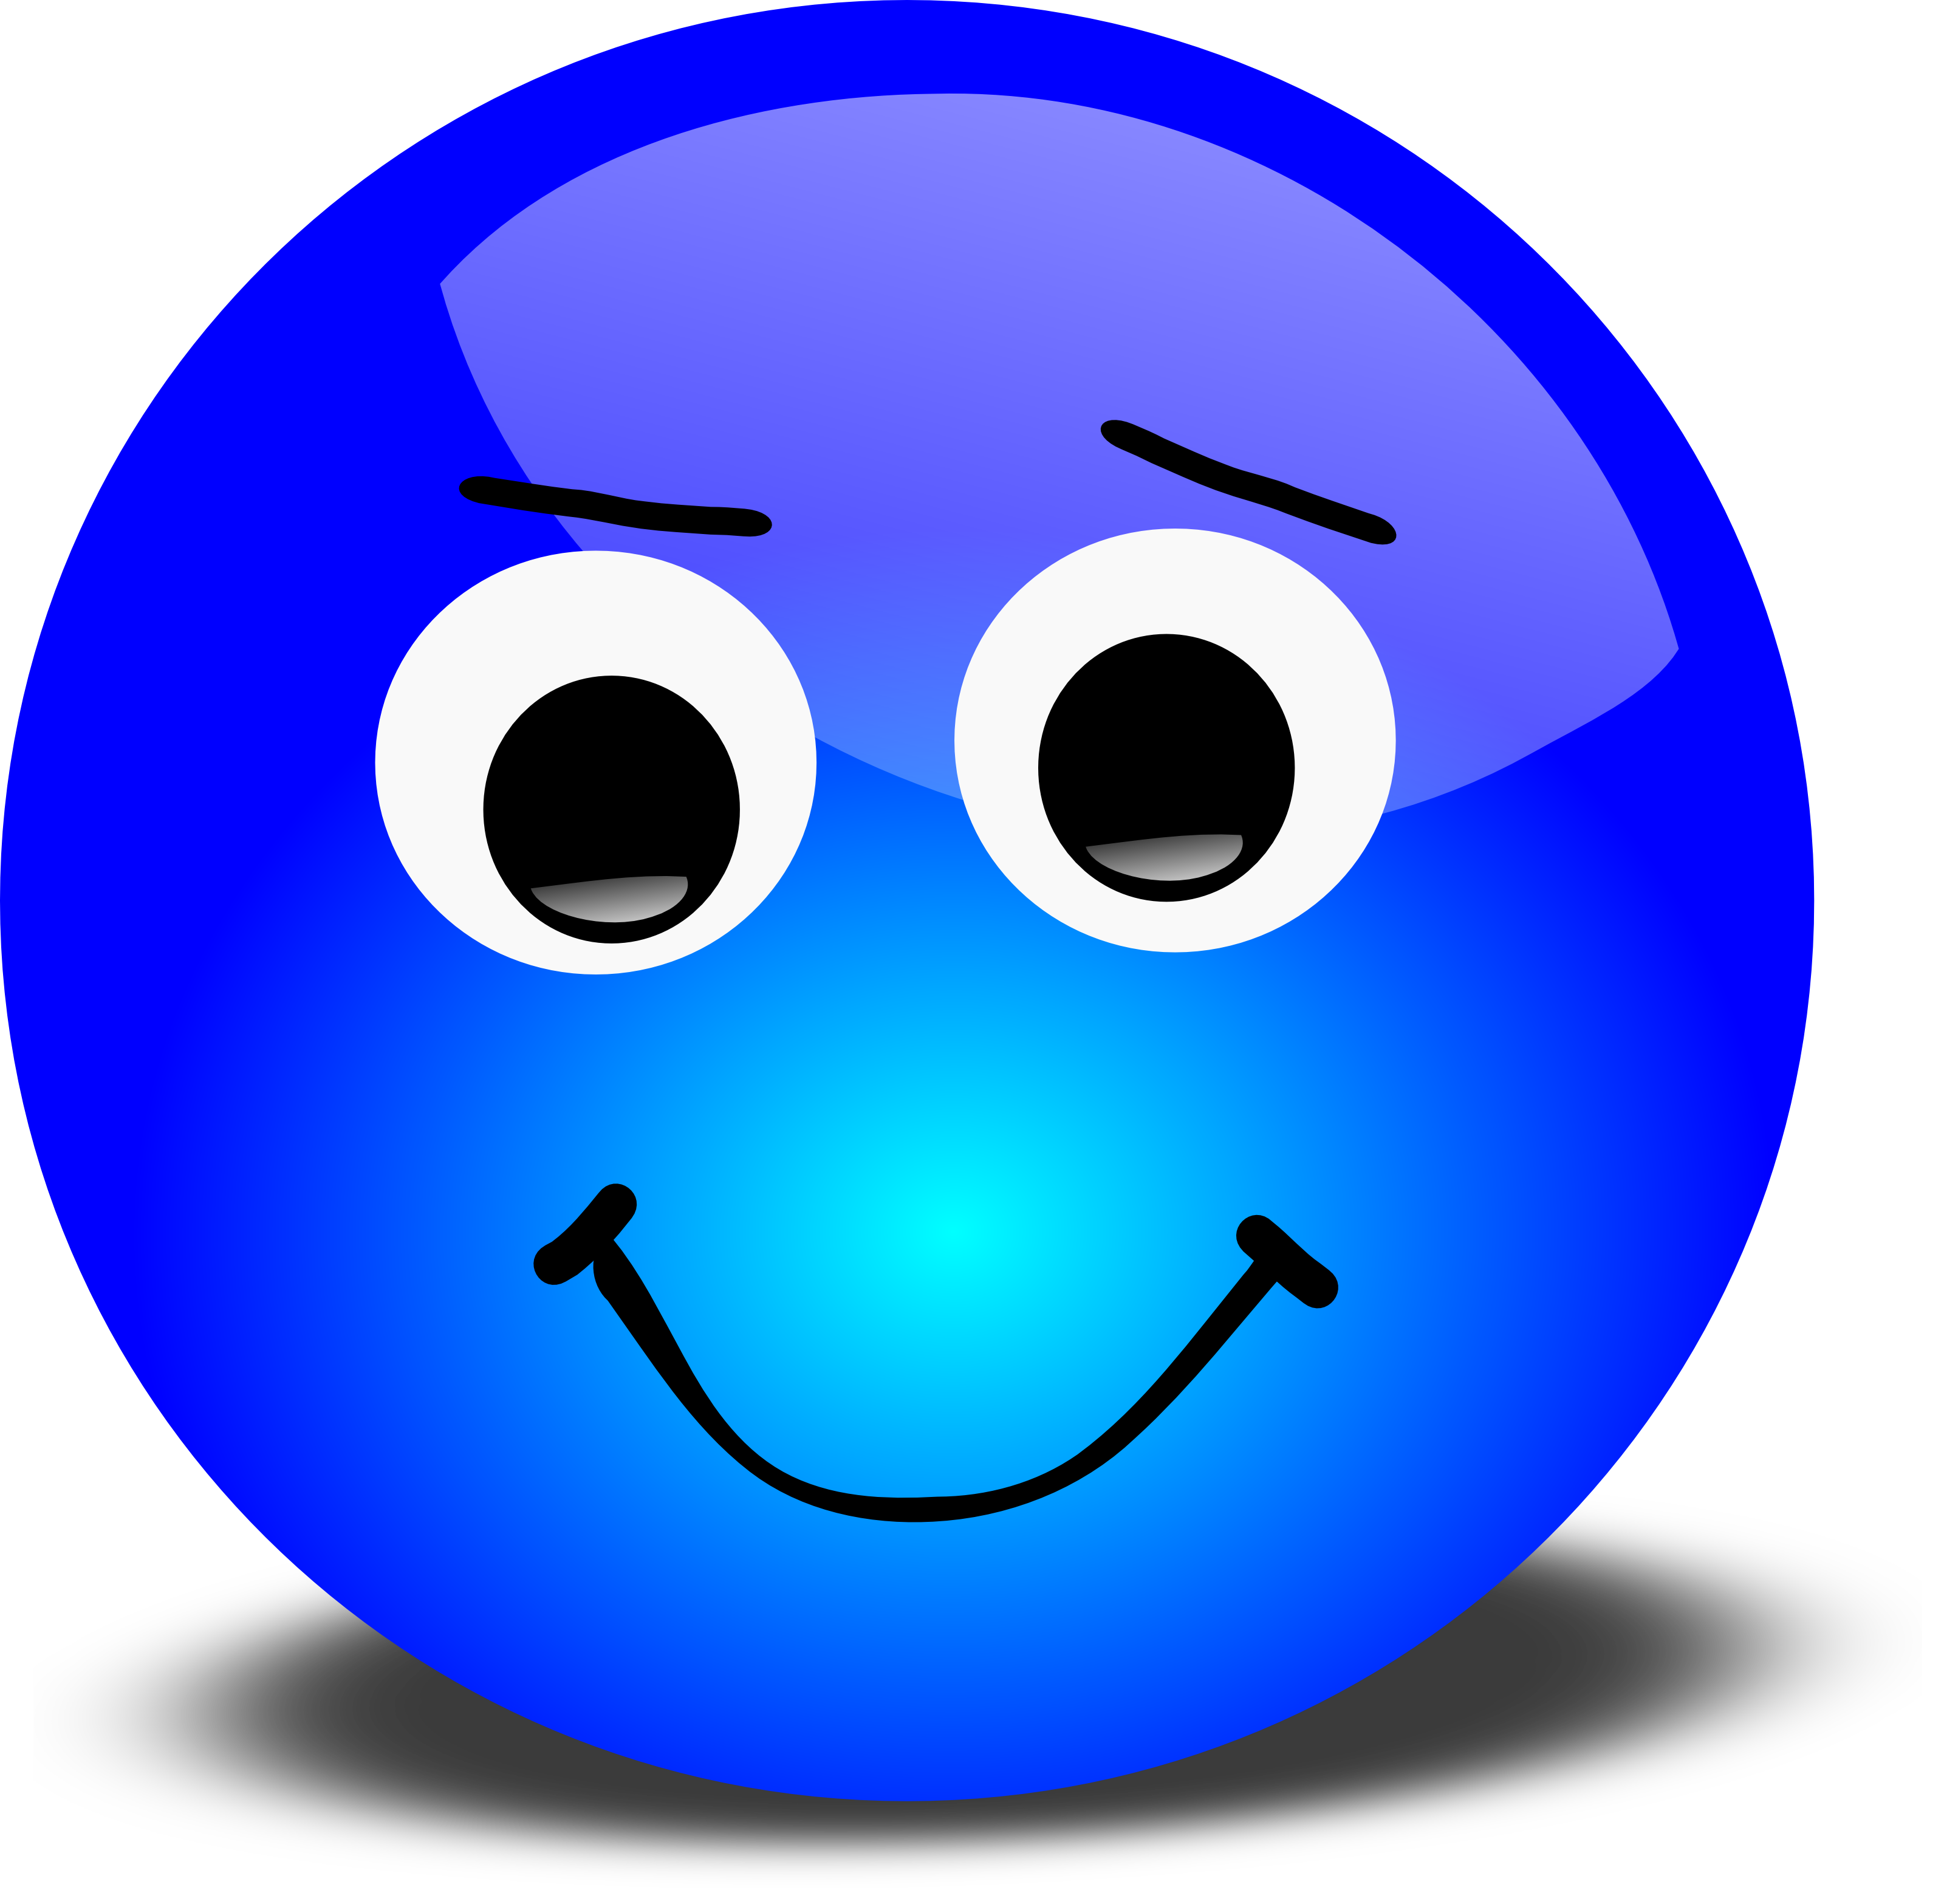 Smiley face clipart png. Panda free images smileyfacepng